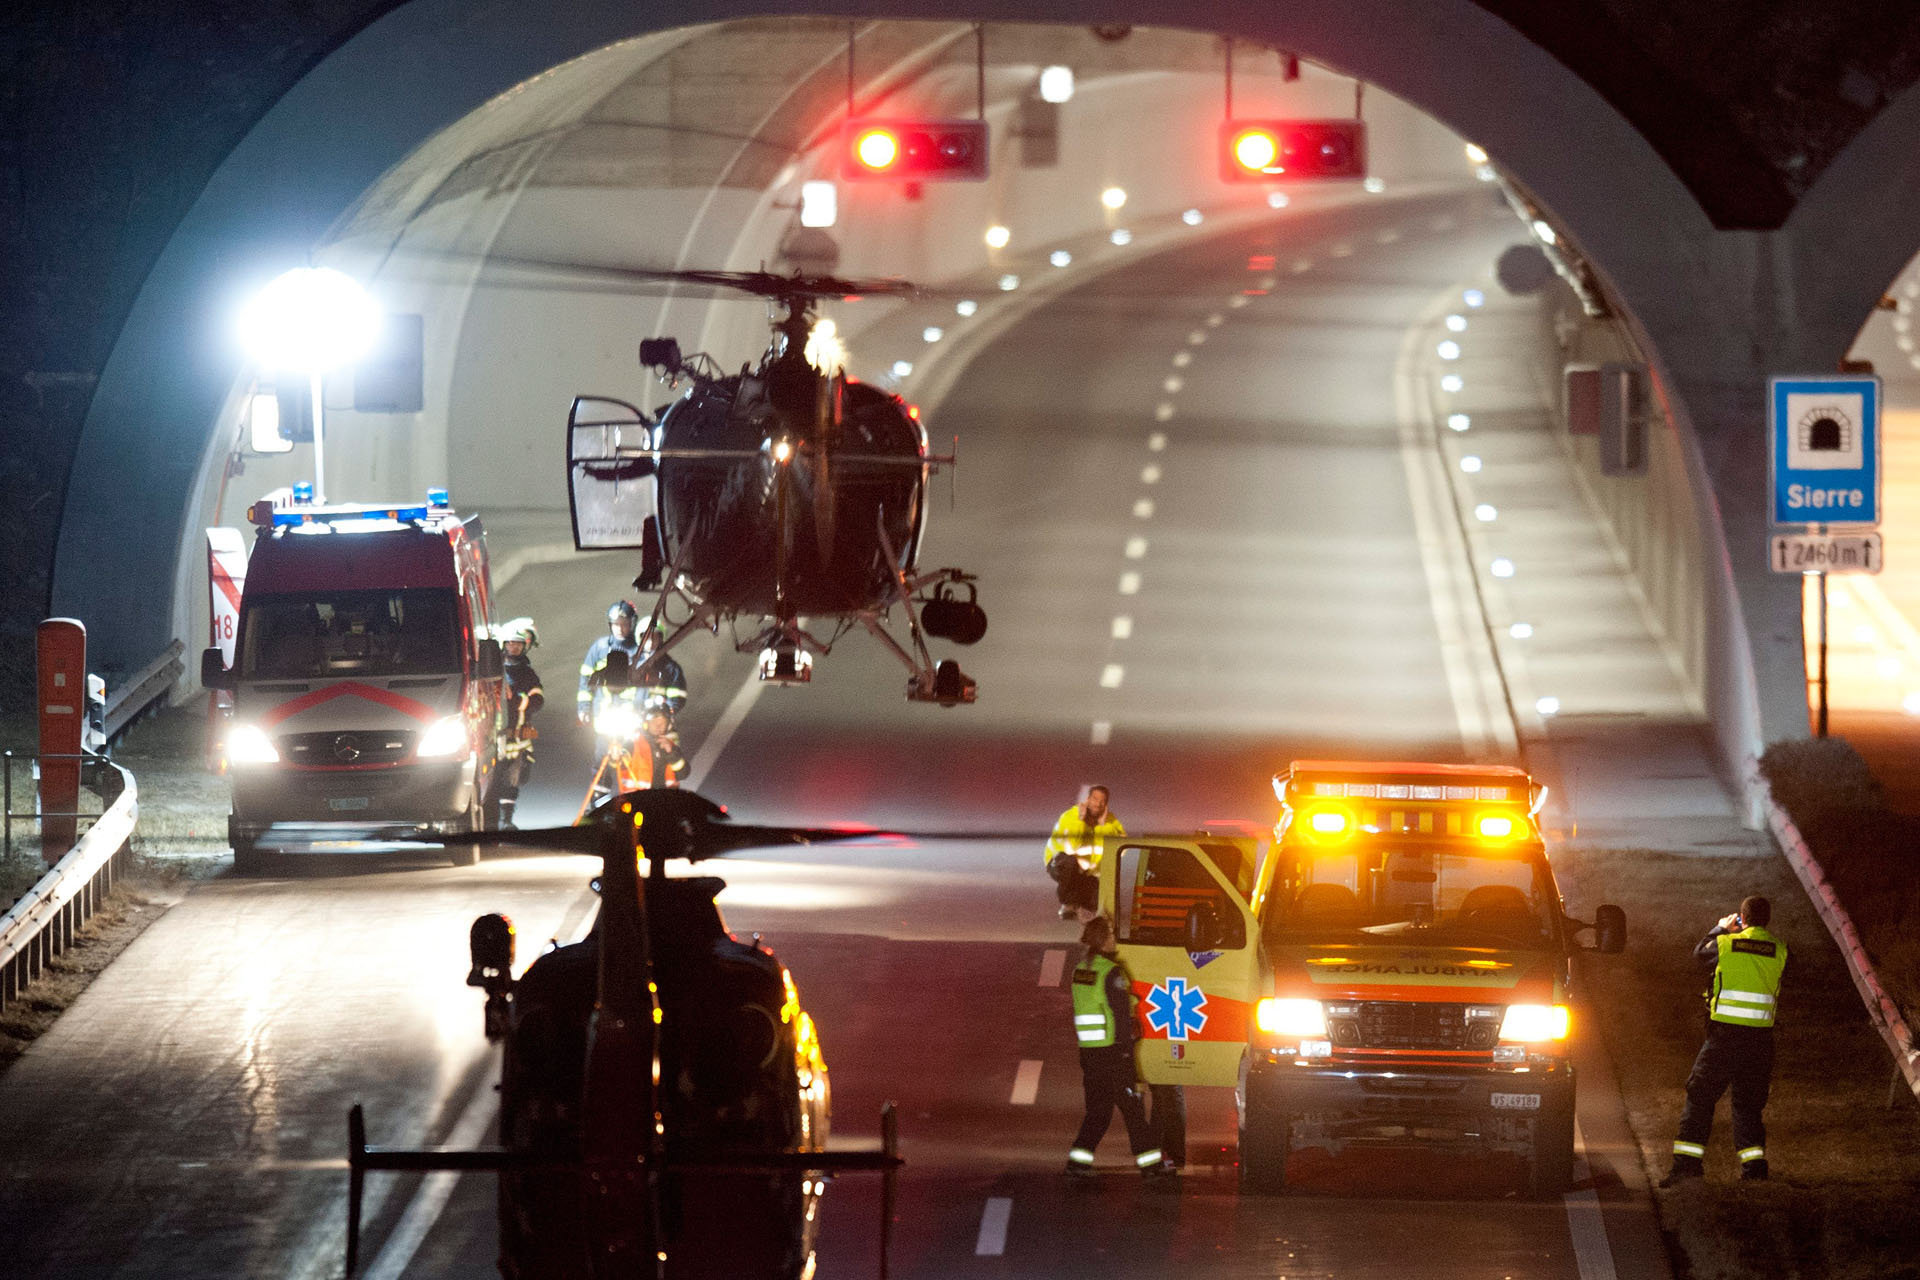 Accident car - Sierre - 2012